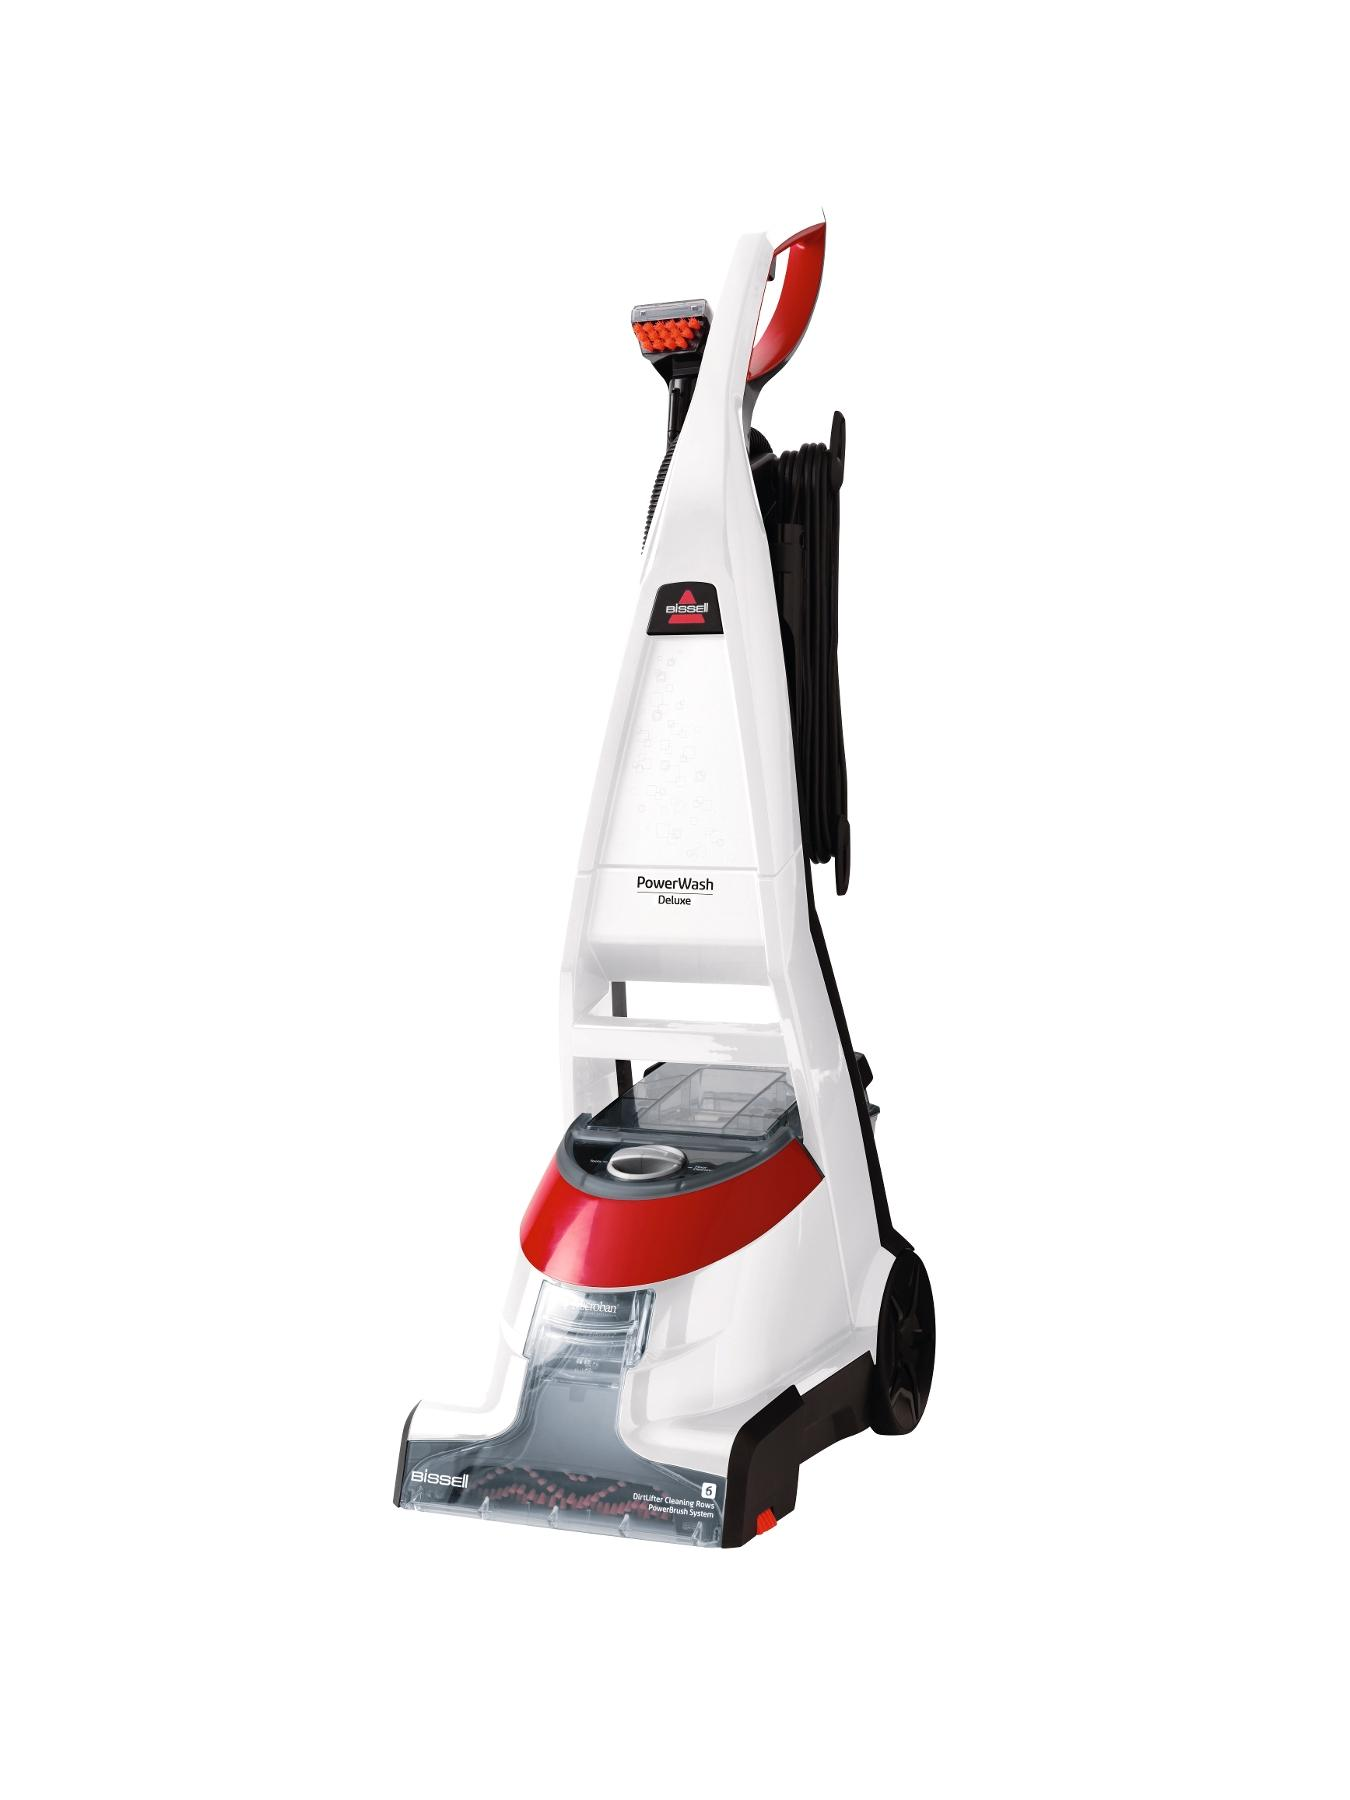 Powerwash Delux Carpet Washer